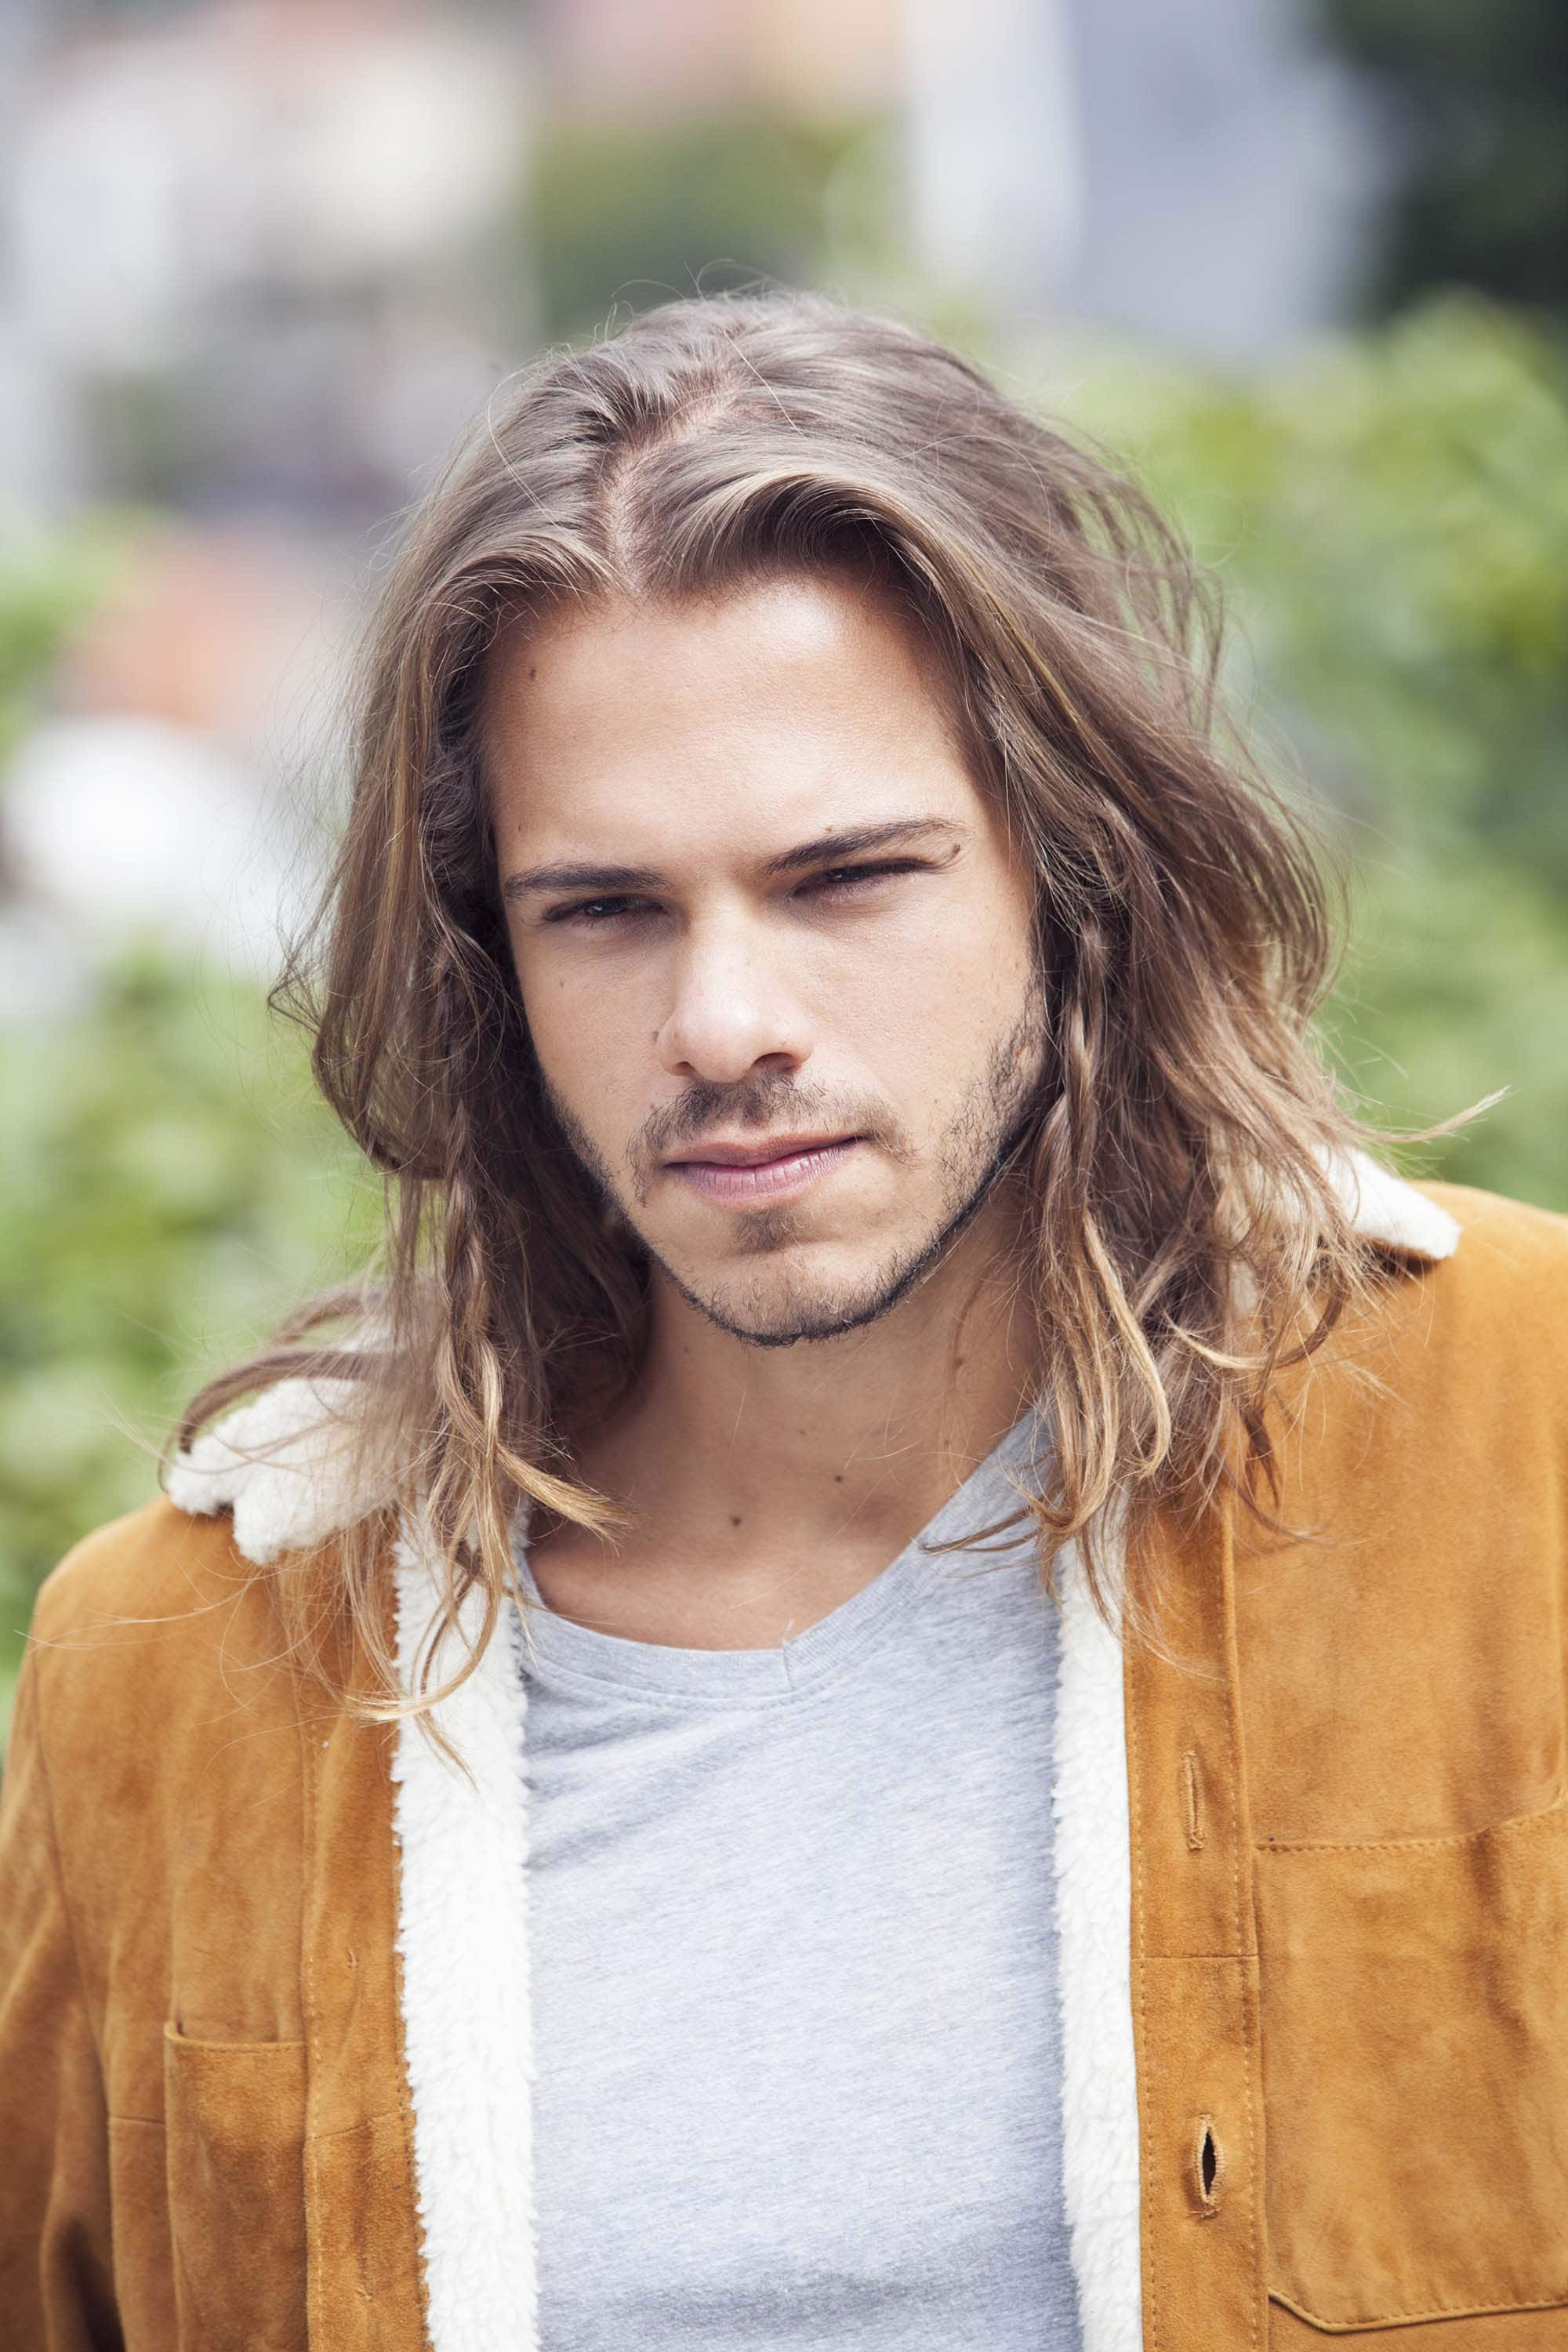 Best ideas about Long Men Hairstyles . Save or Pin Edgy long hairstyles men can pull off Now.